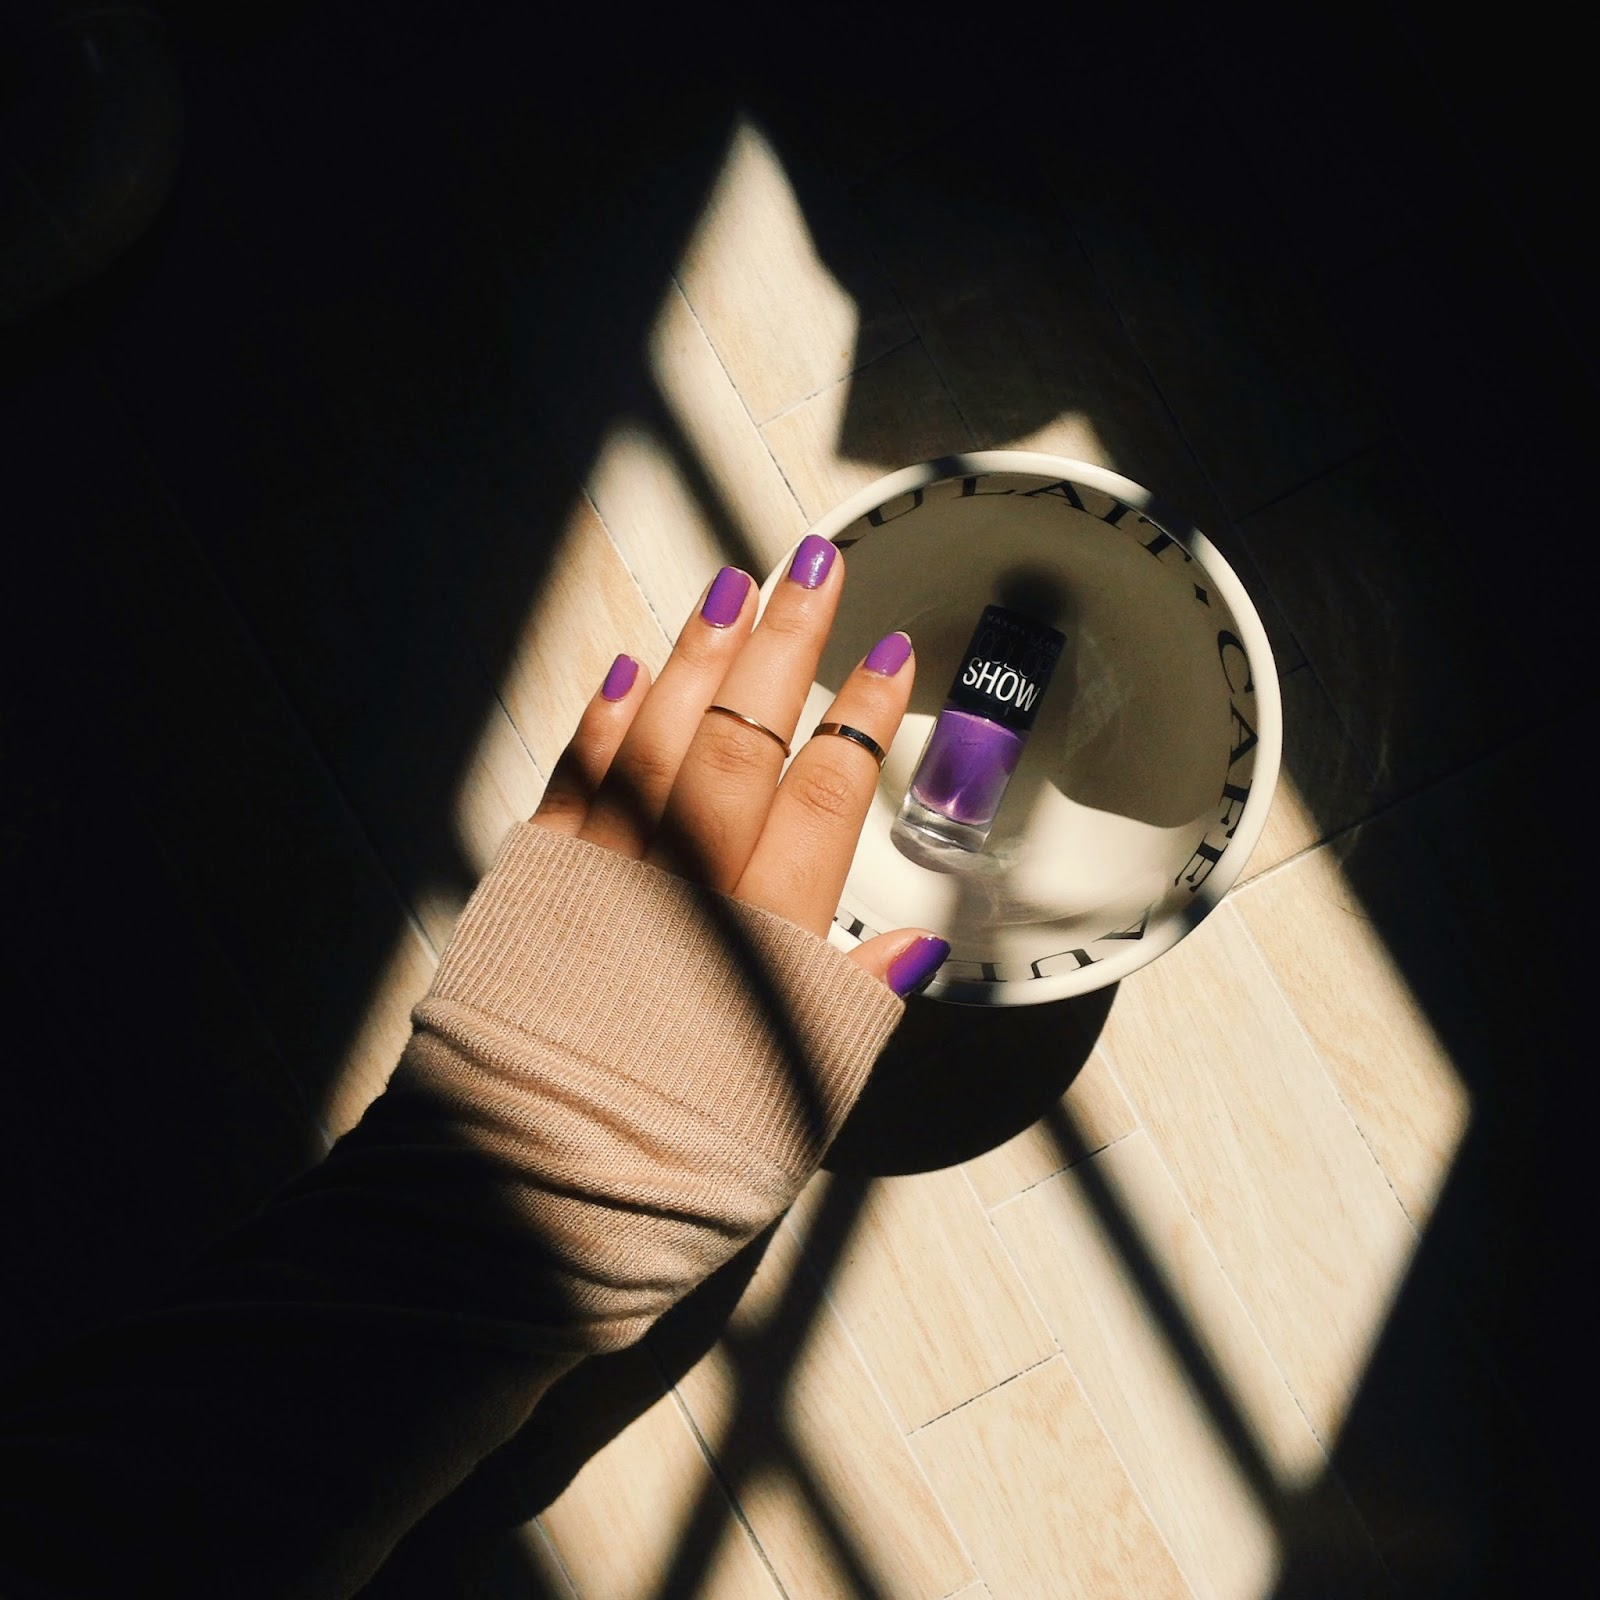 This image shows freshly manicured nails, painted in Lavender Lies from Maybelline Color Show